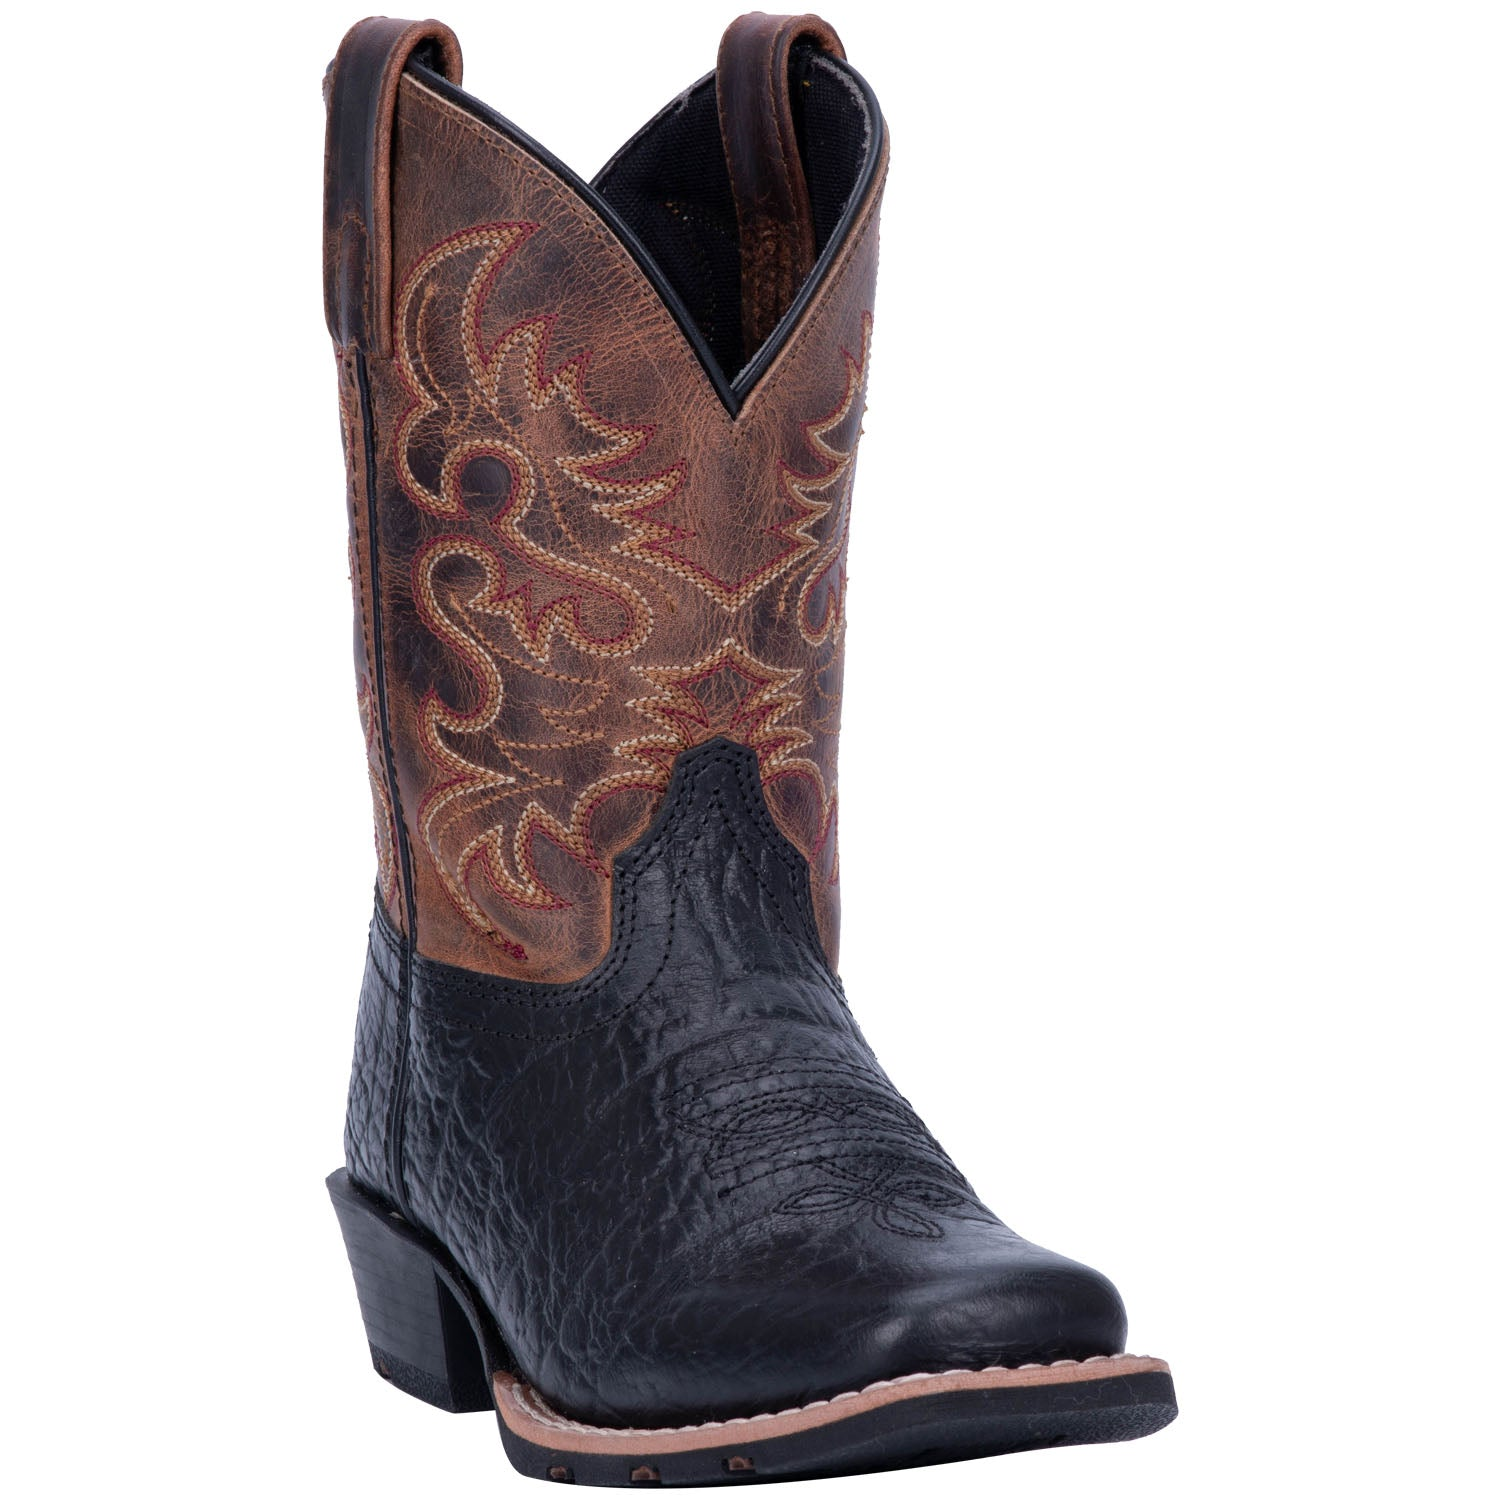 LITTLE RIVER LEATHER YOUTH BOOT 4253843357738